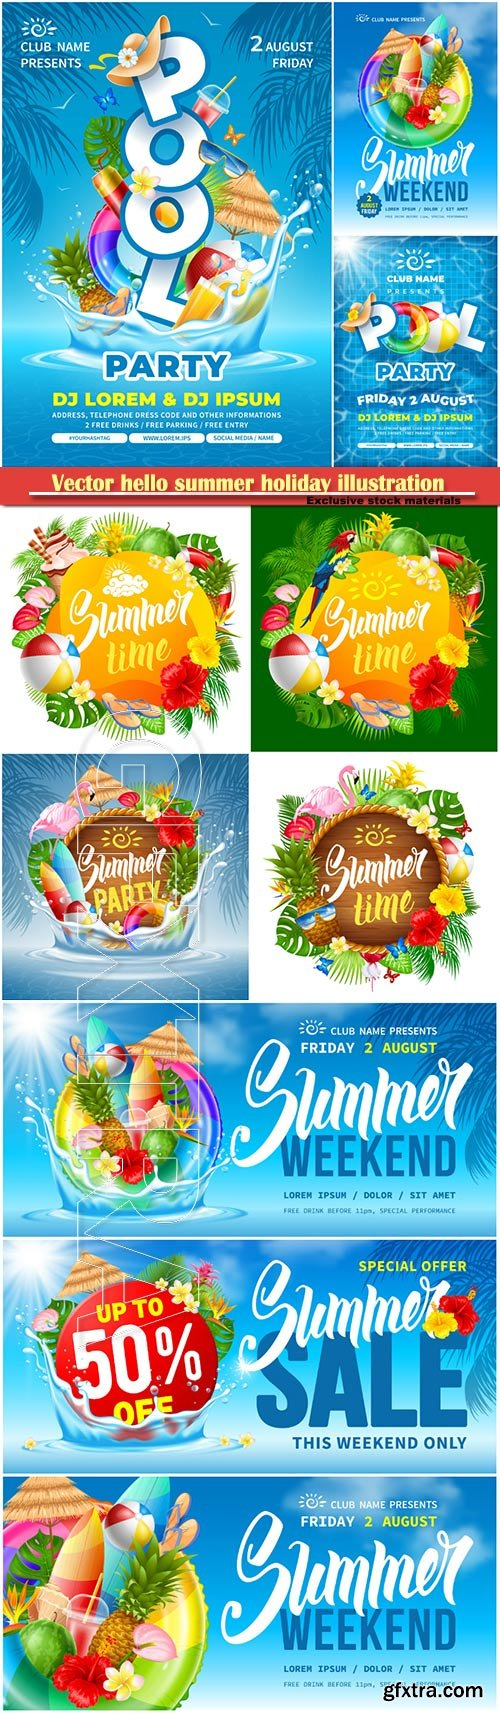 Vector hello summer holiday illustration # 6